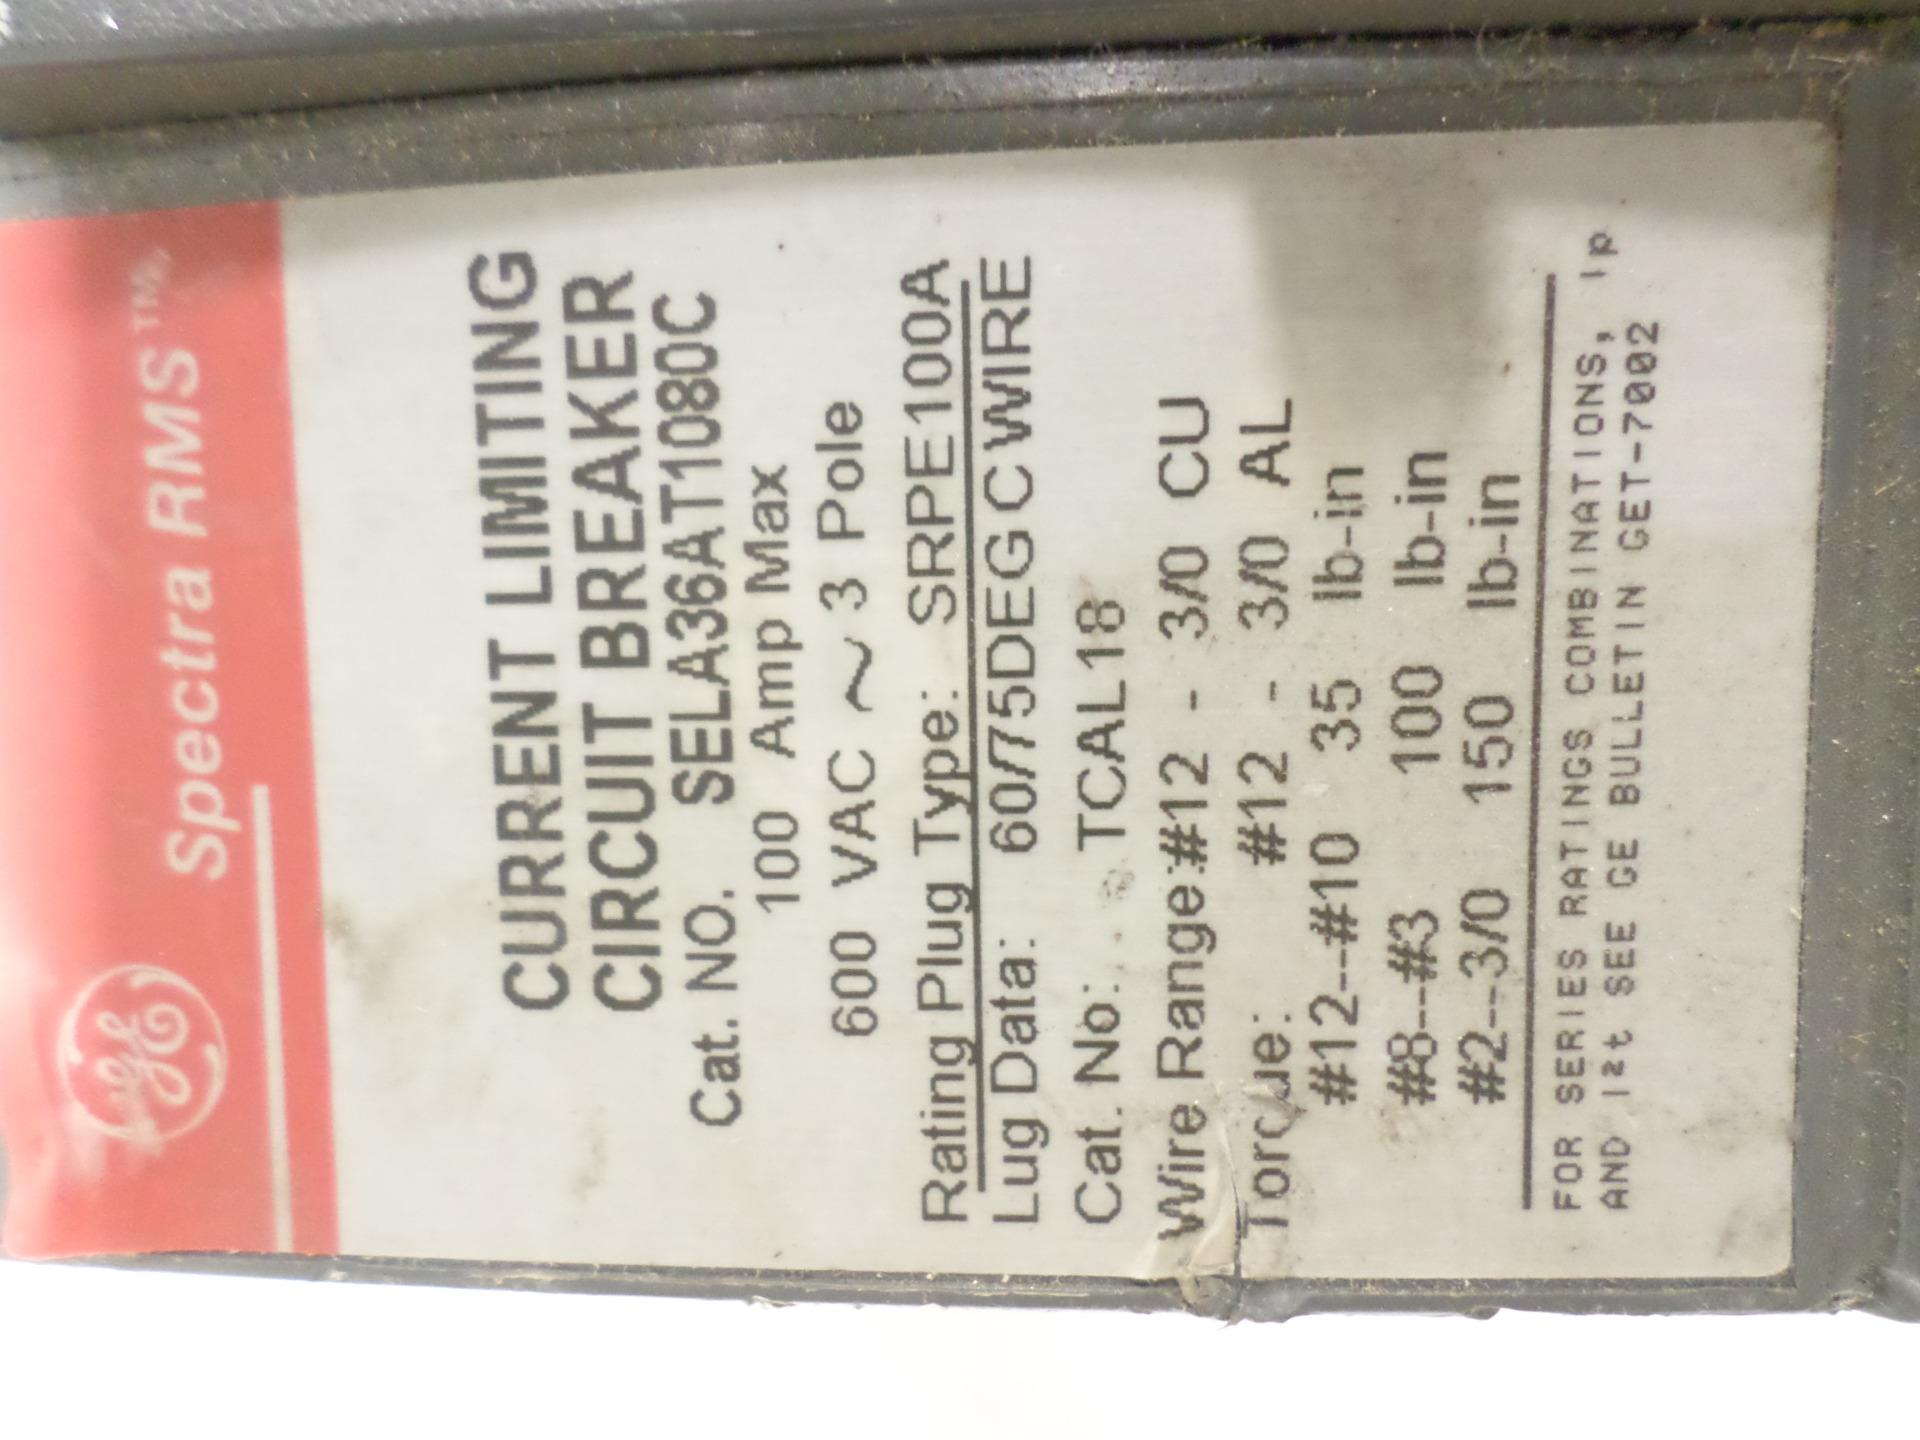 Ge Spectra Rms Current Limiting Circuit Breaker 3 Pole 100amp Sela36at1080c Lsjch07152016 Shelf51 15971 Jobcodece62816